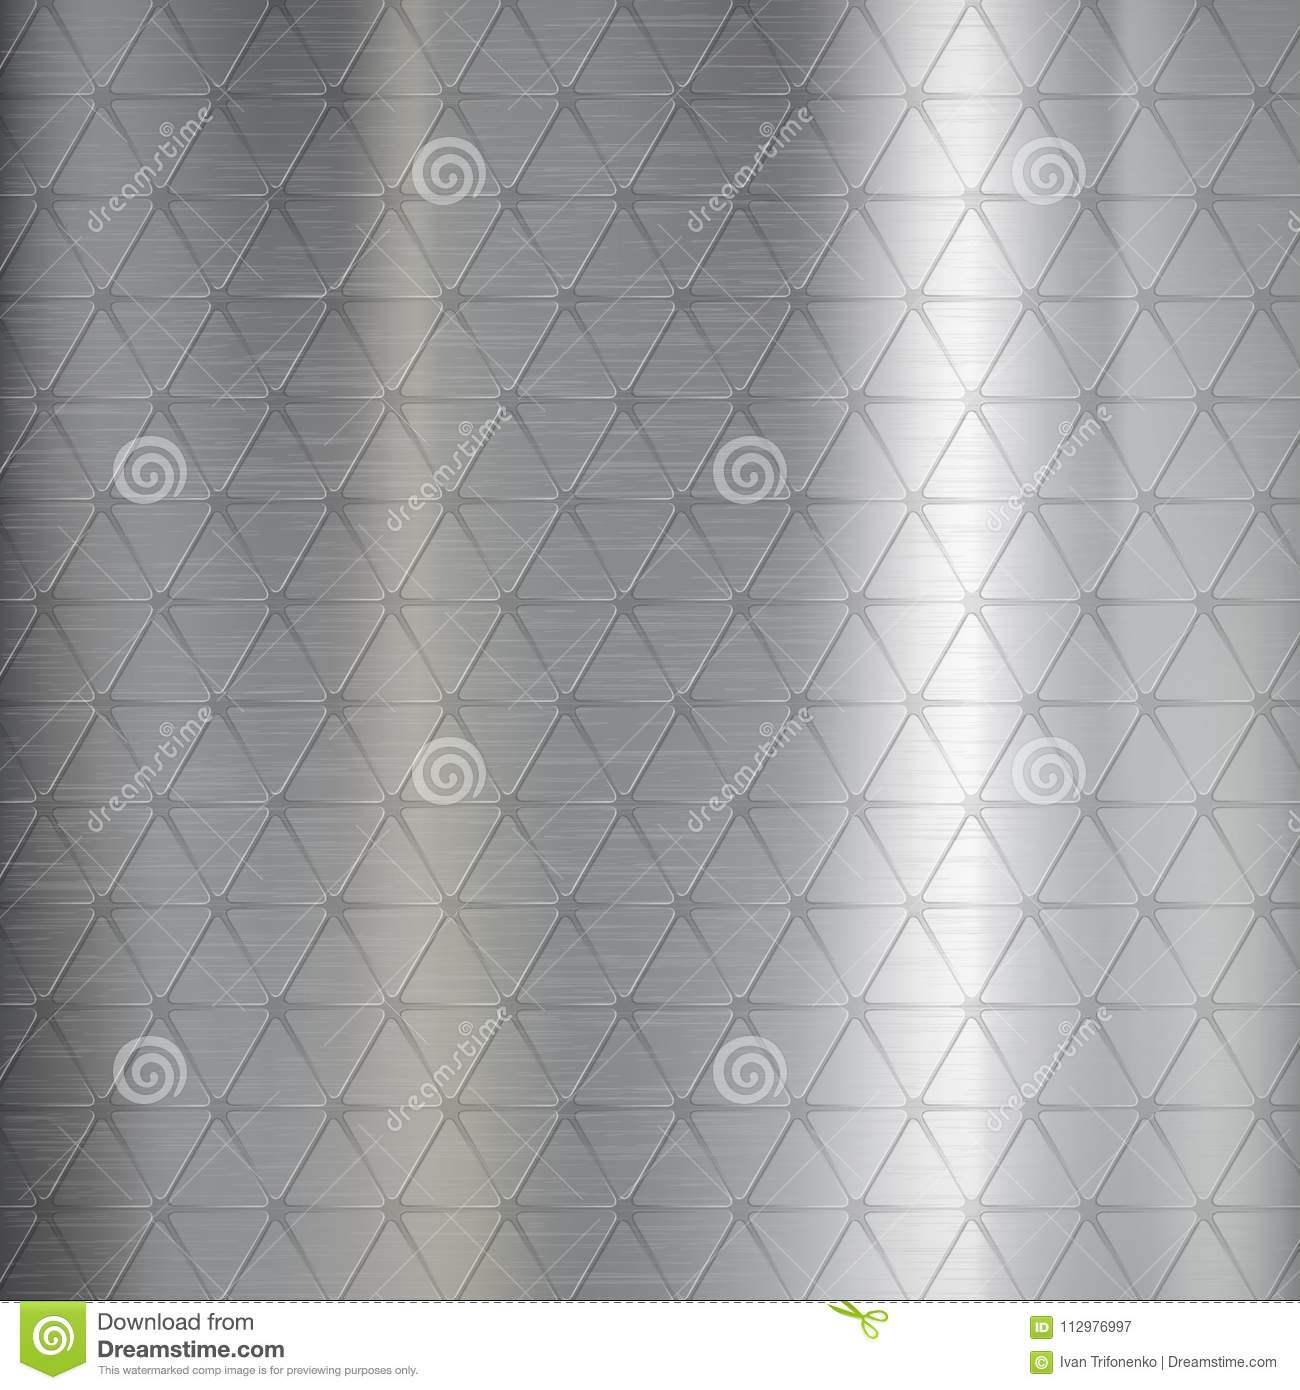 Textured brushed metal from pattern of geometric triangle.